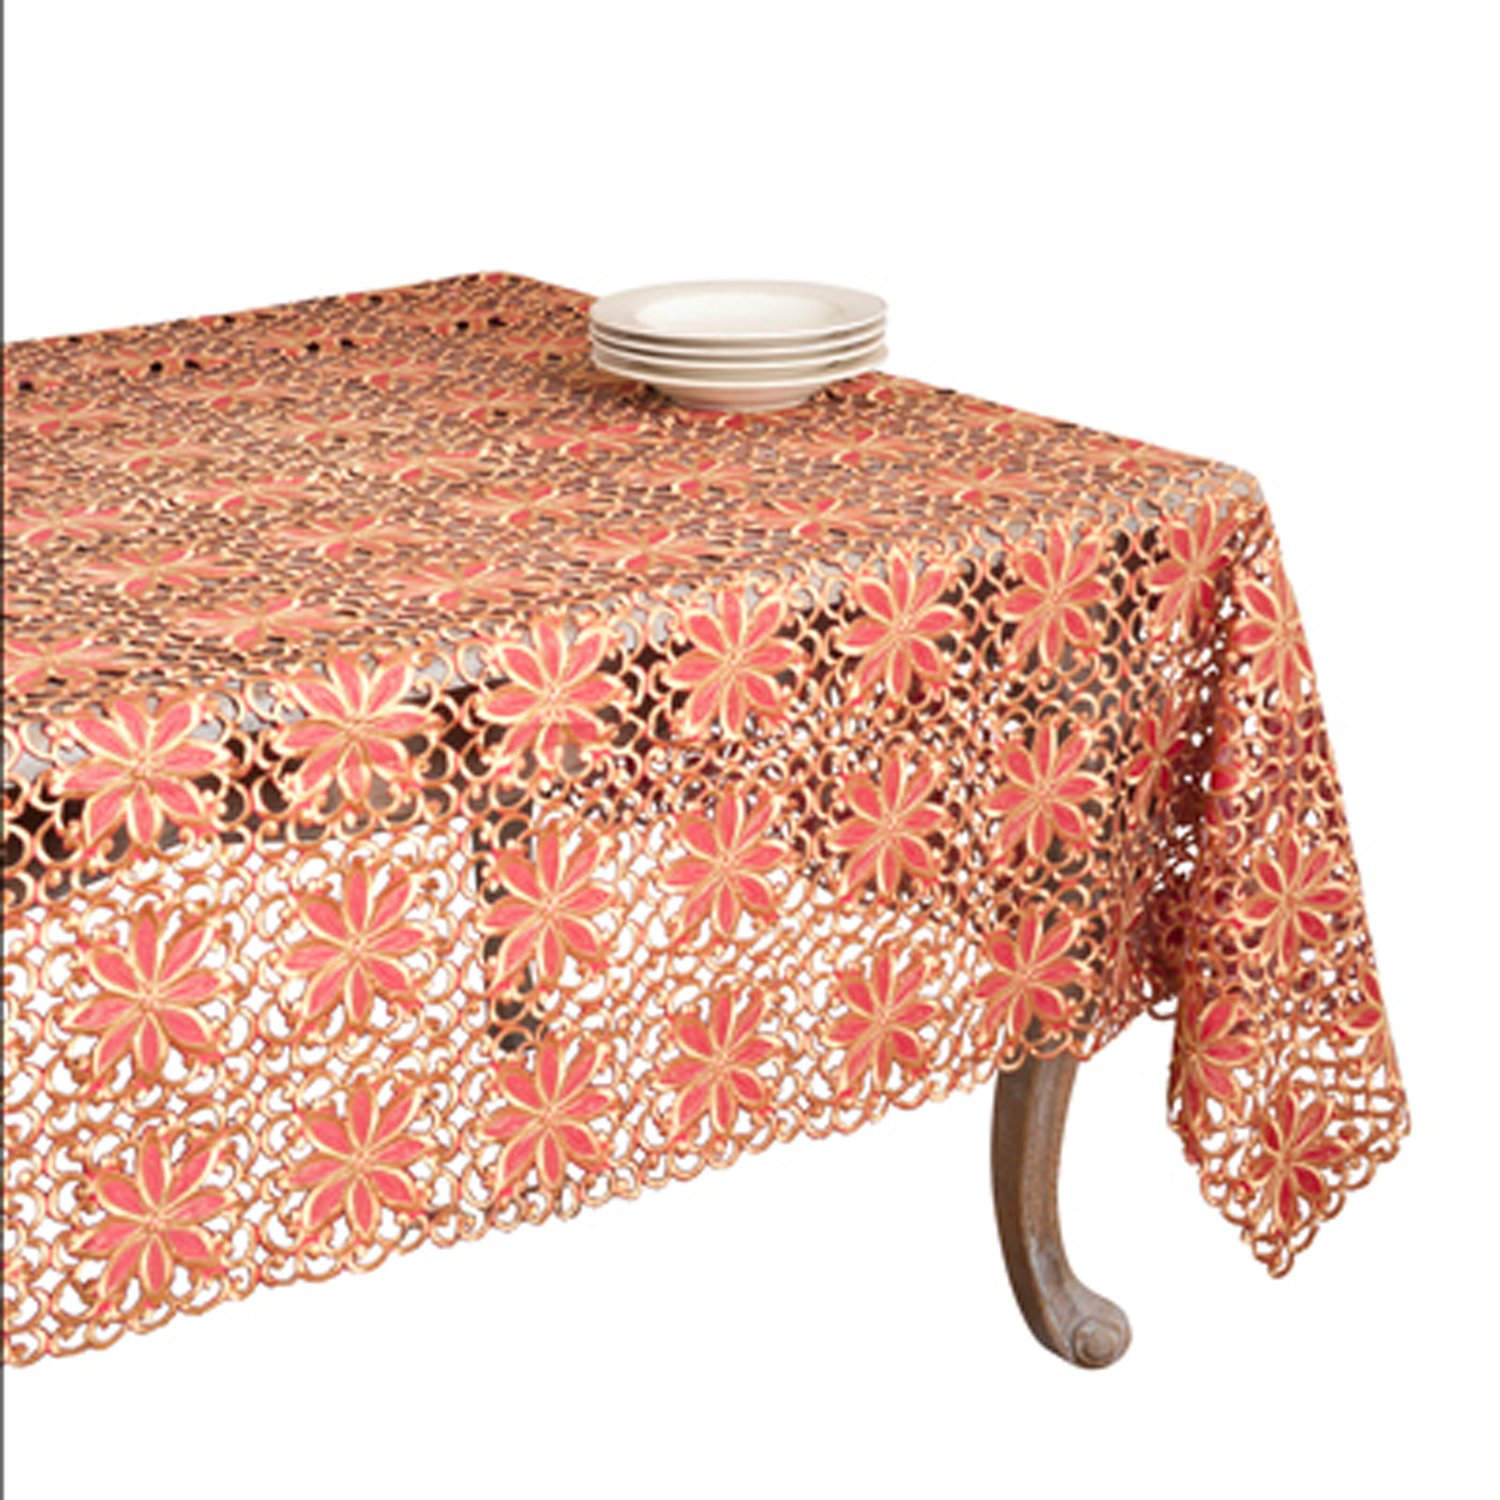 SARO LIFESTYLE QX556 Broderie Cutwork Oblong Tablecloth, 65-Inch by 104-Inch, Red